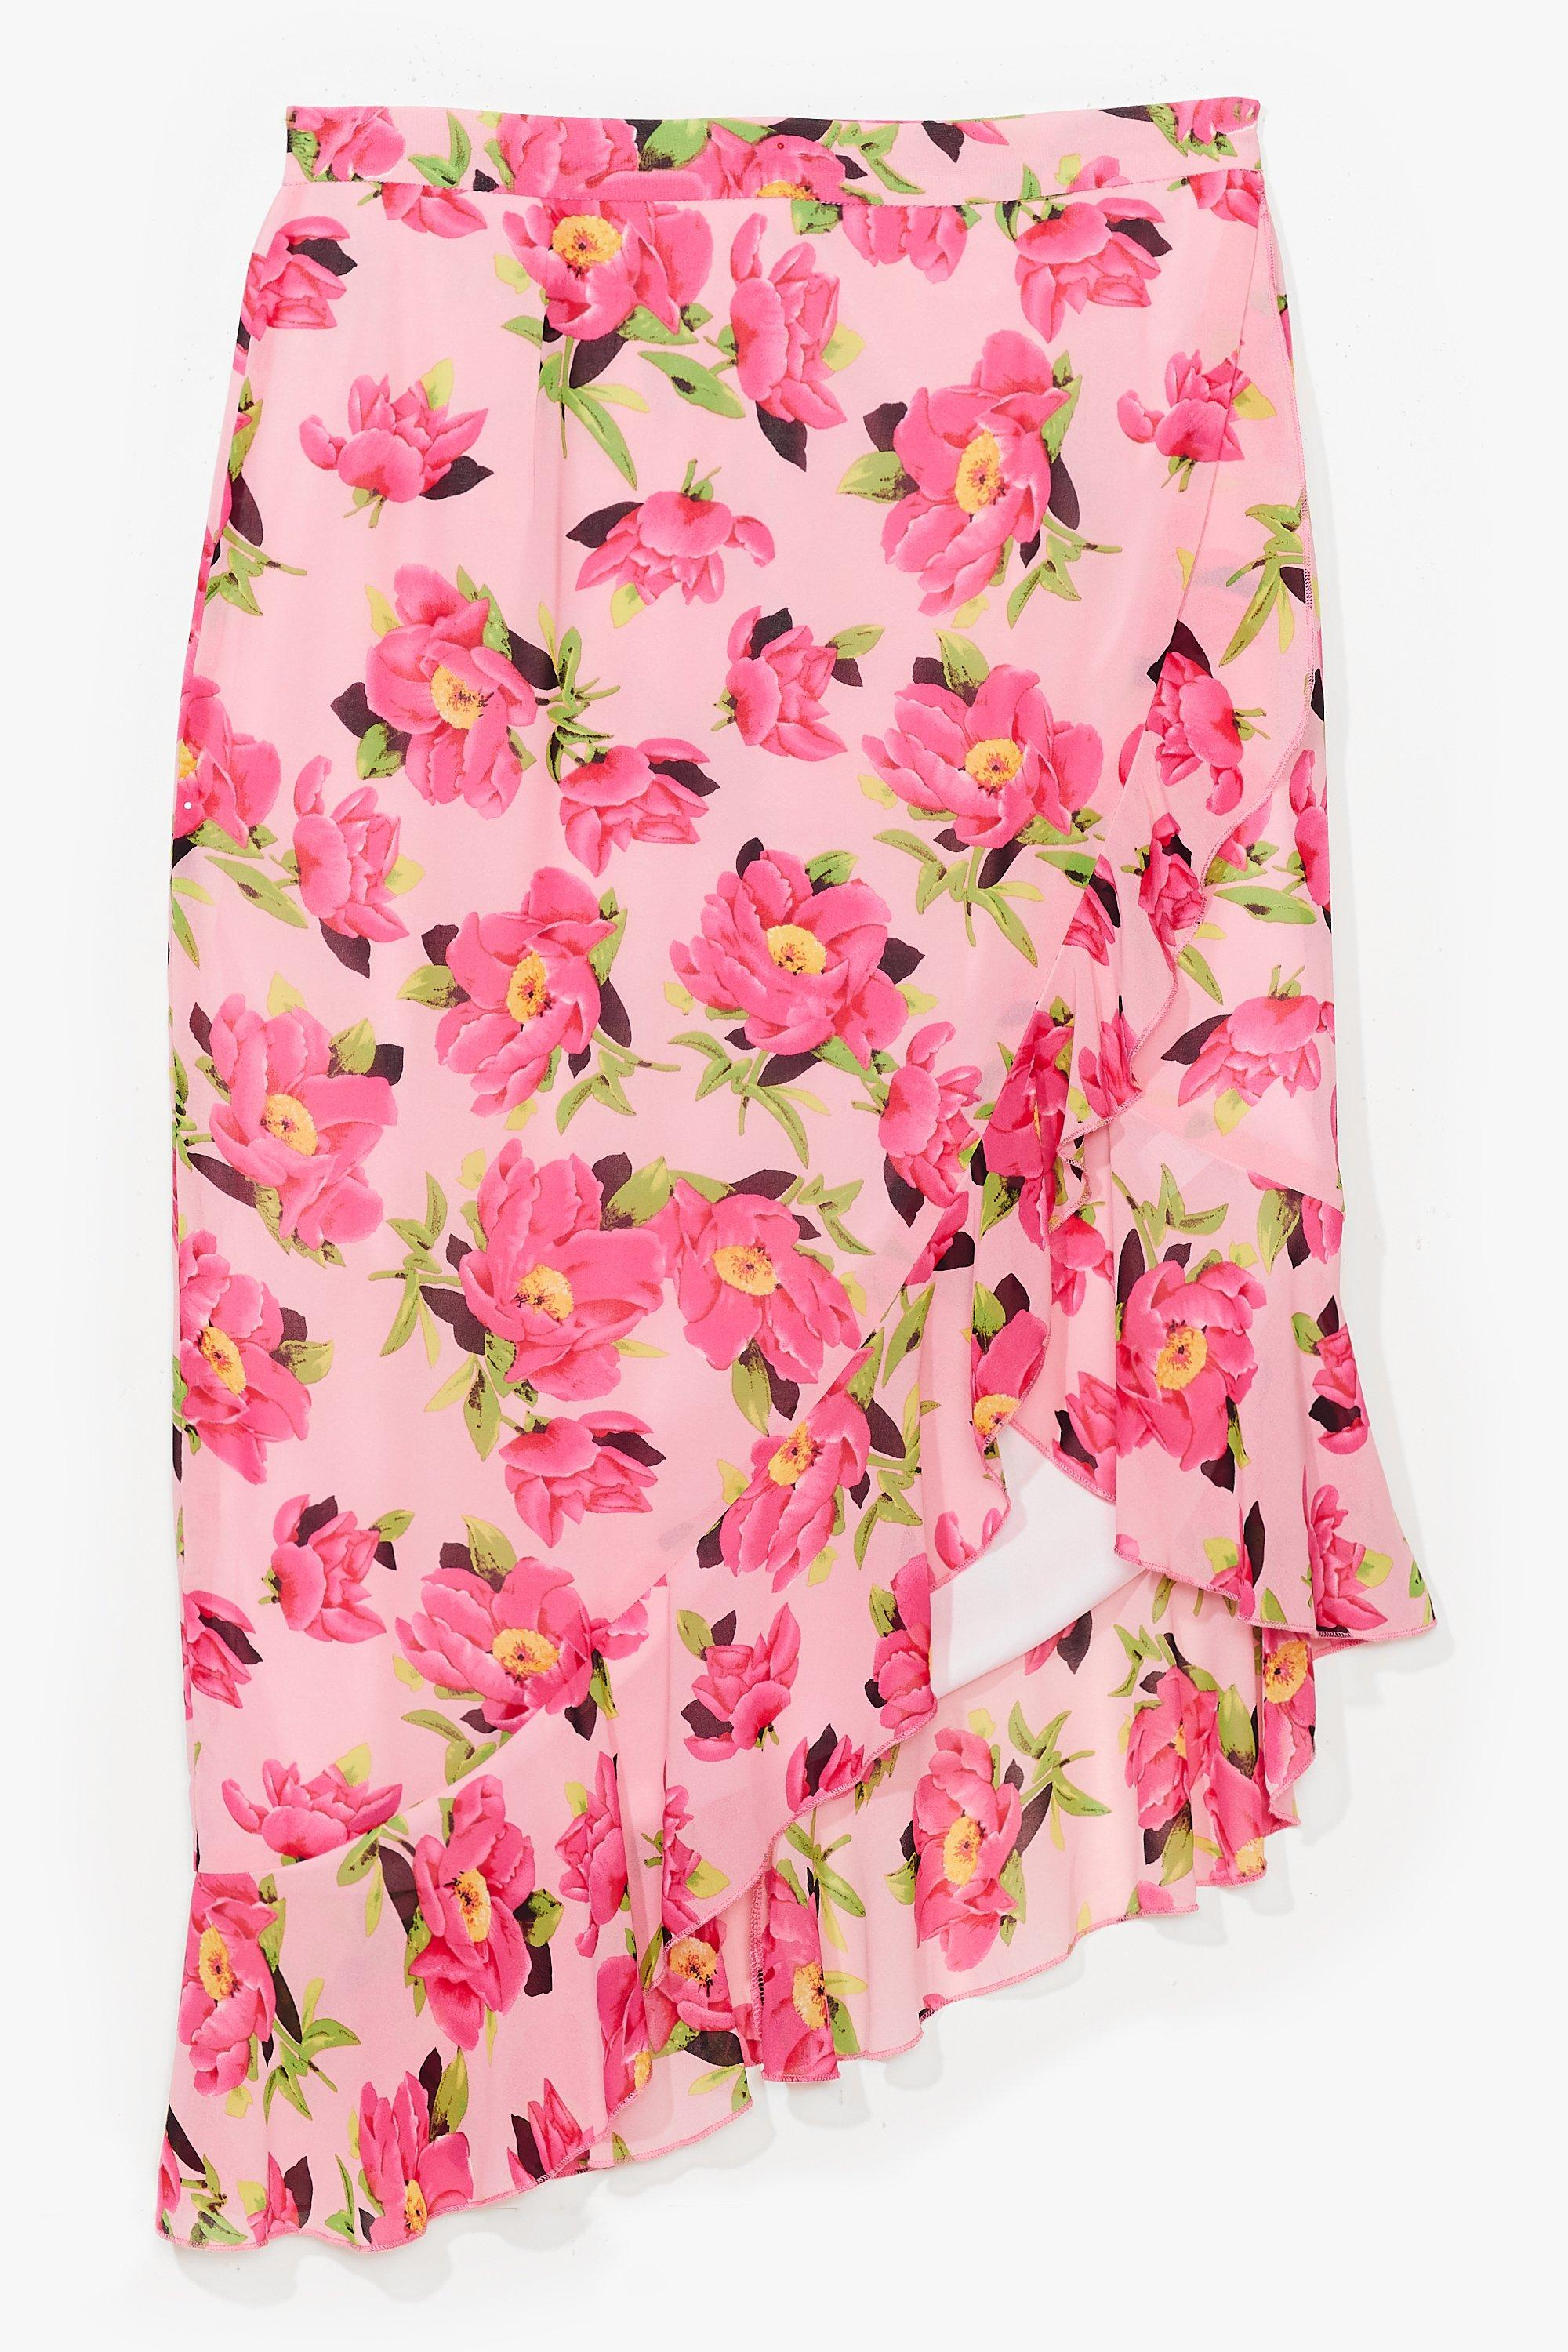 Frill Don't Care Plus Floral Skirt 11